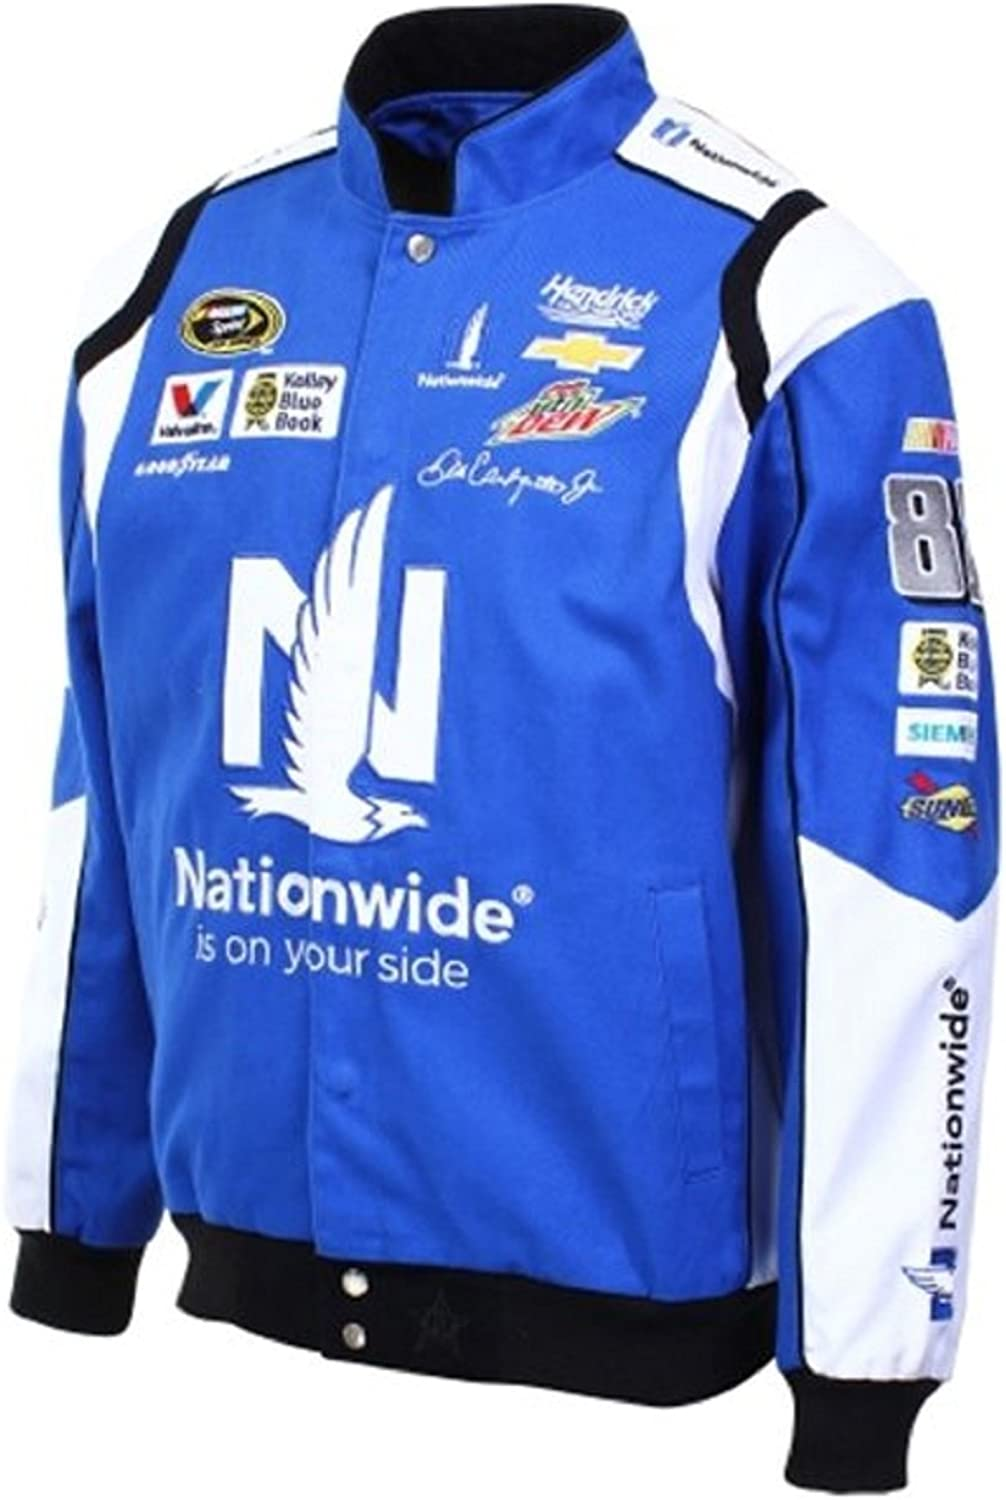 Dale Earnhardt Jr. Nationwide NASCAR Jacket Size Medium